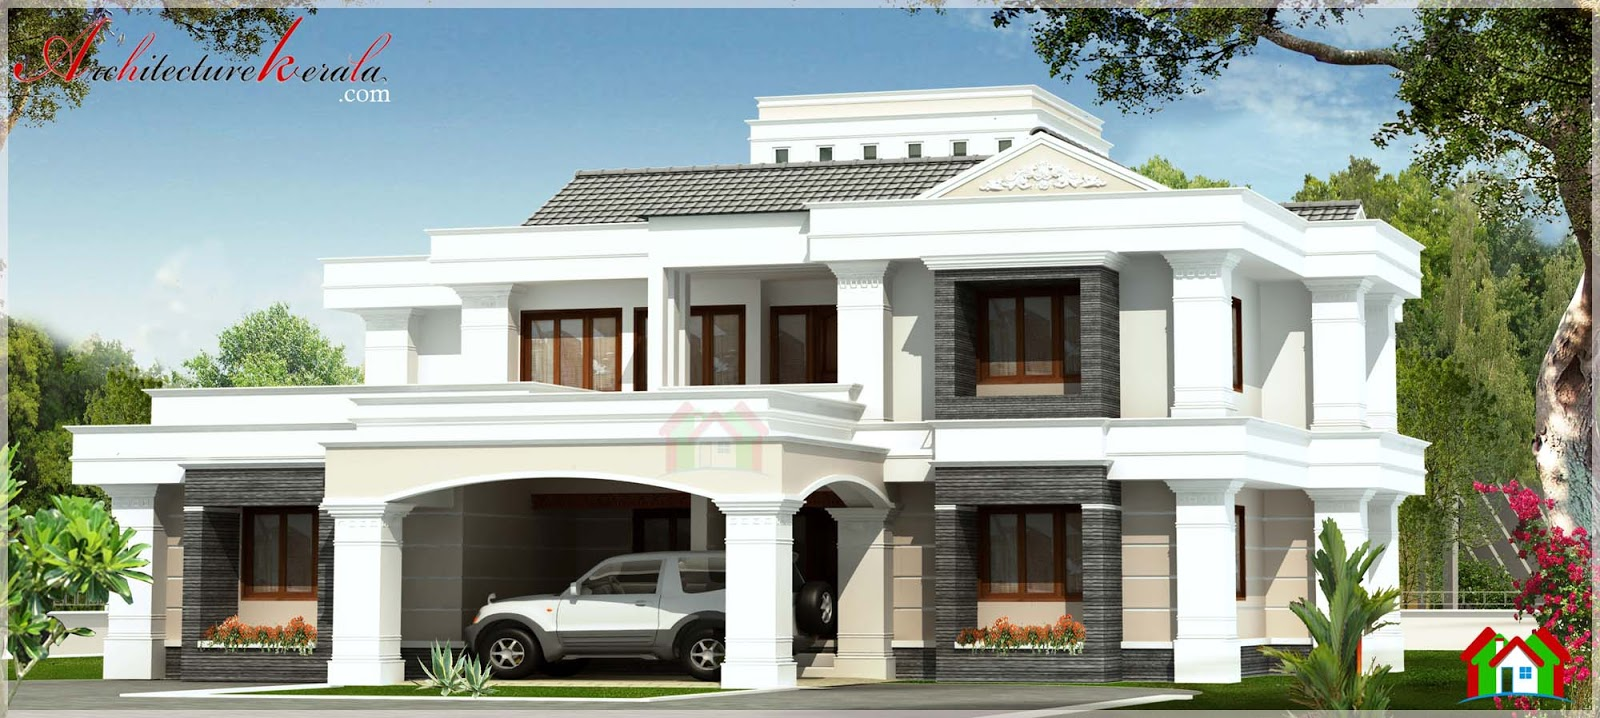 Contemporary style kerala house elevation architecture for Contemporary house in kerala